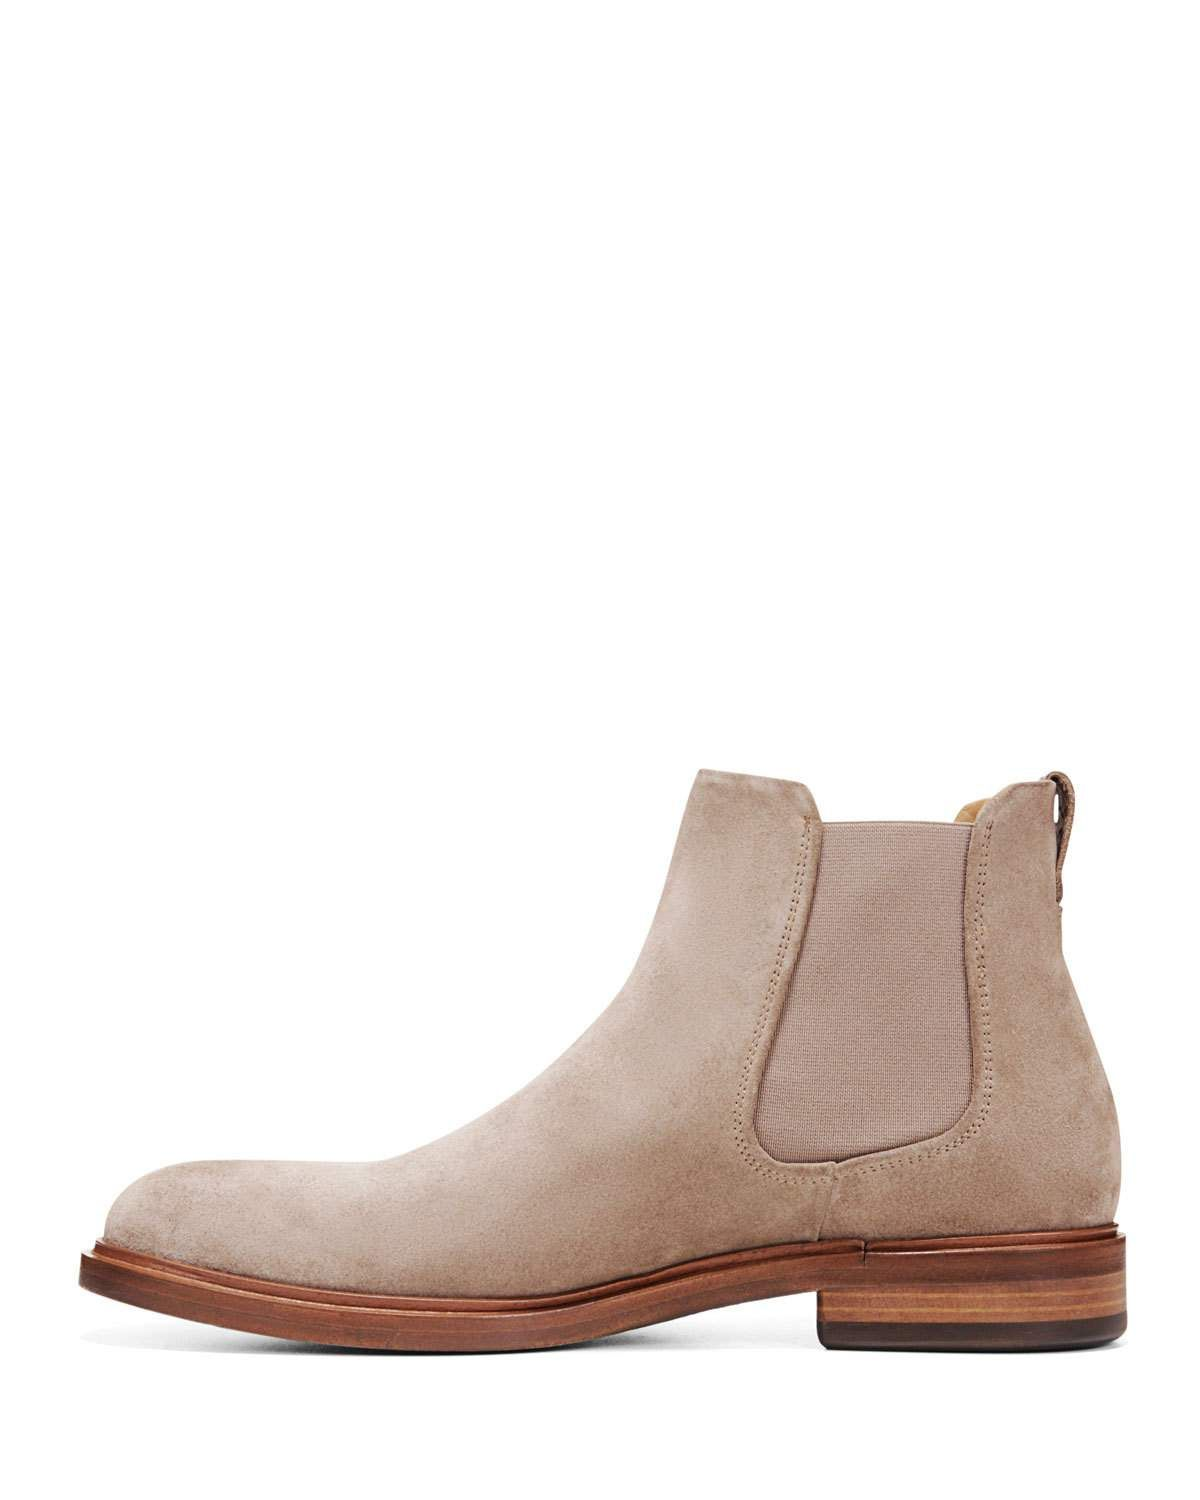 ff3a618f5 Vince Men's Burroughs Suede Chelsea Boot in 2019 | Products | Suede ...